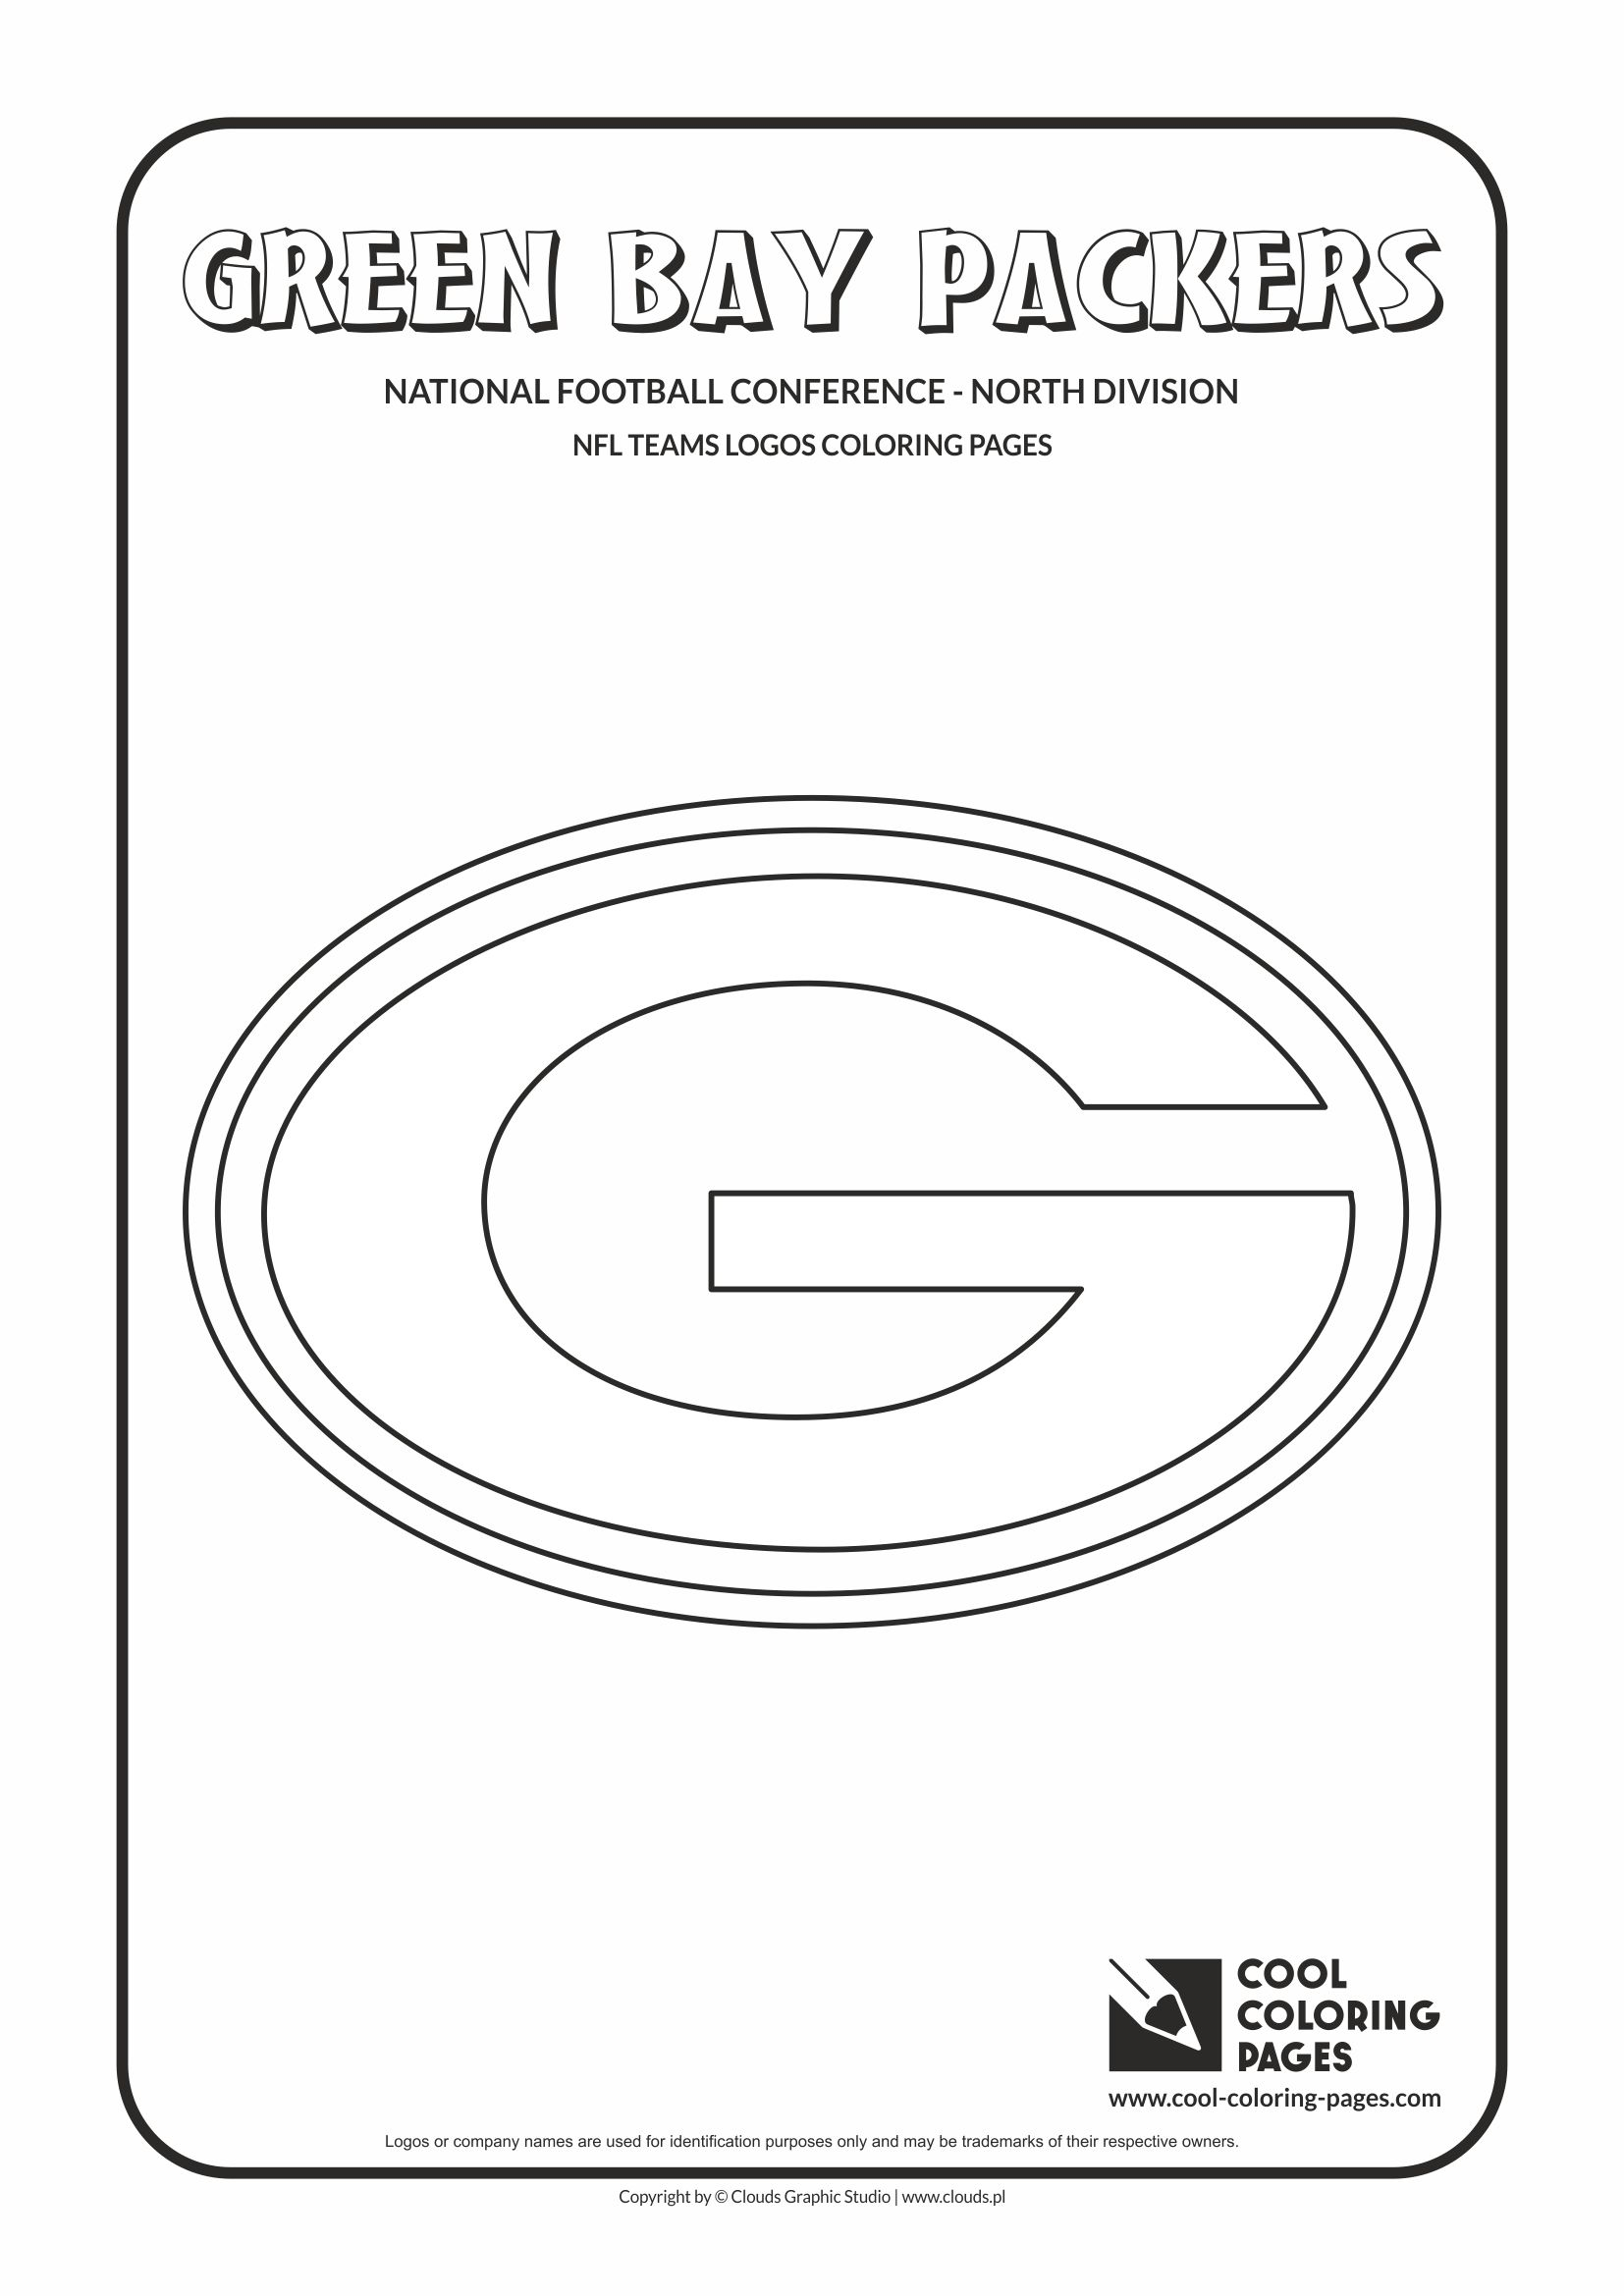 Green Bay Packers NFL American football teams logos coloring